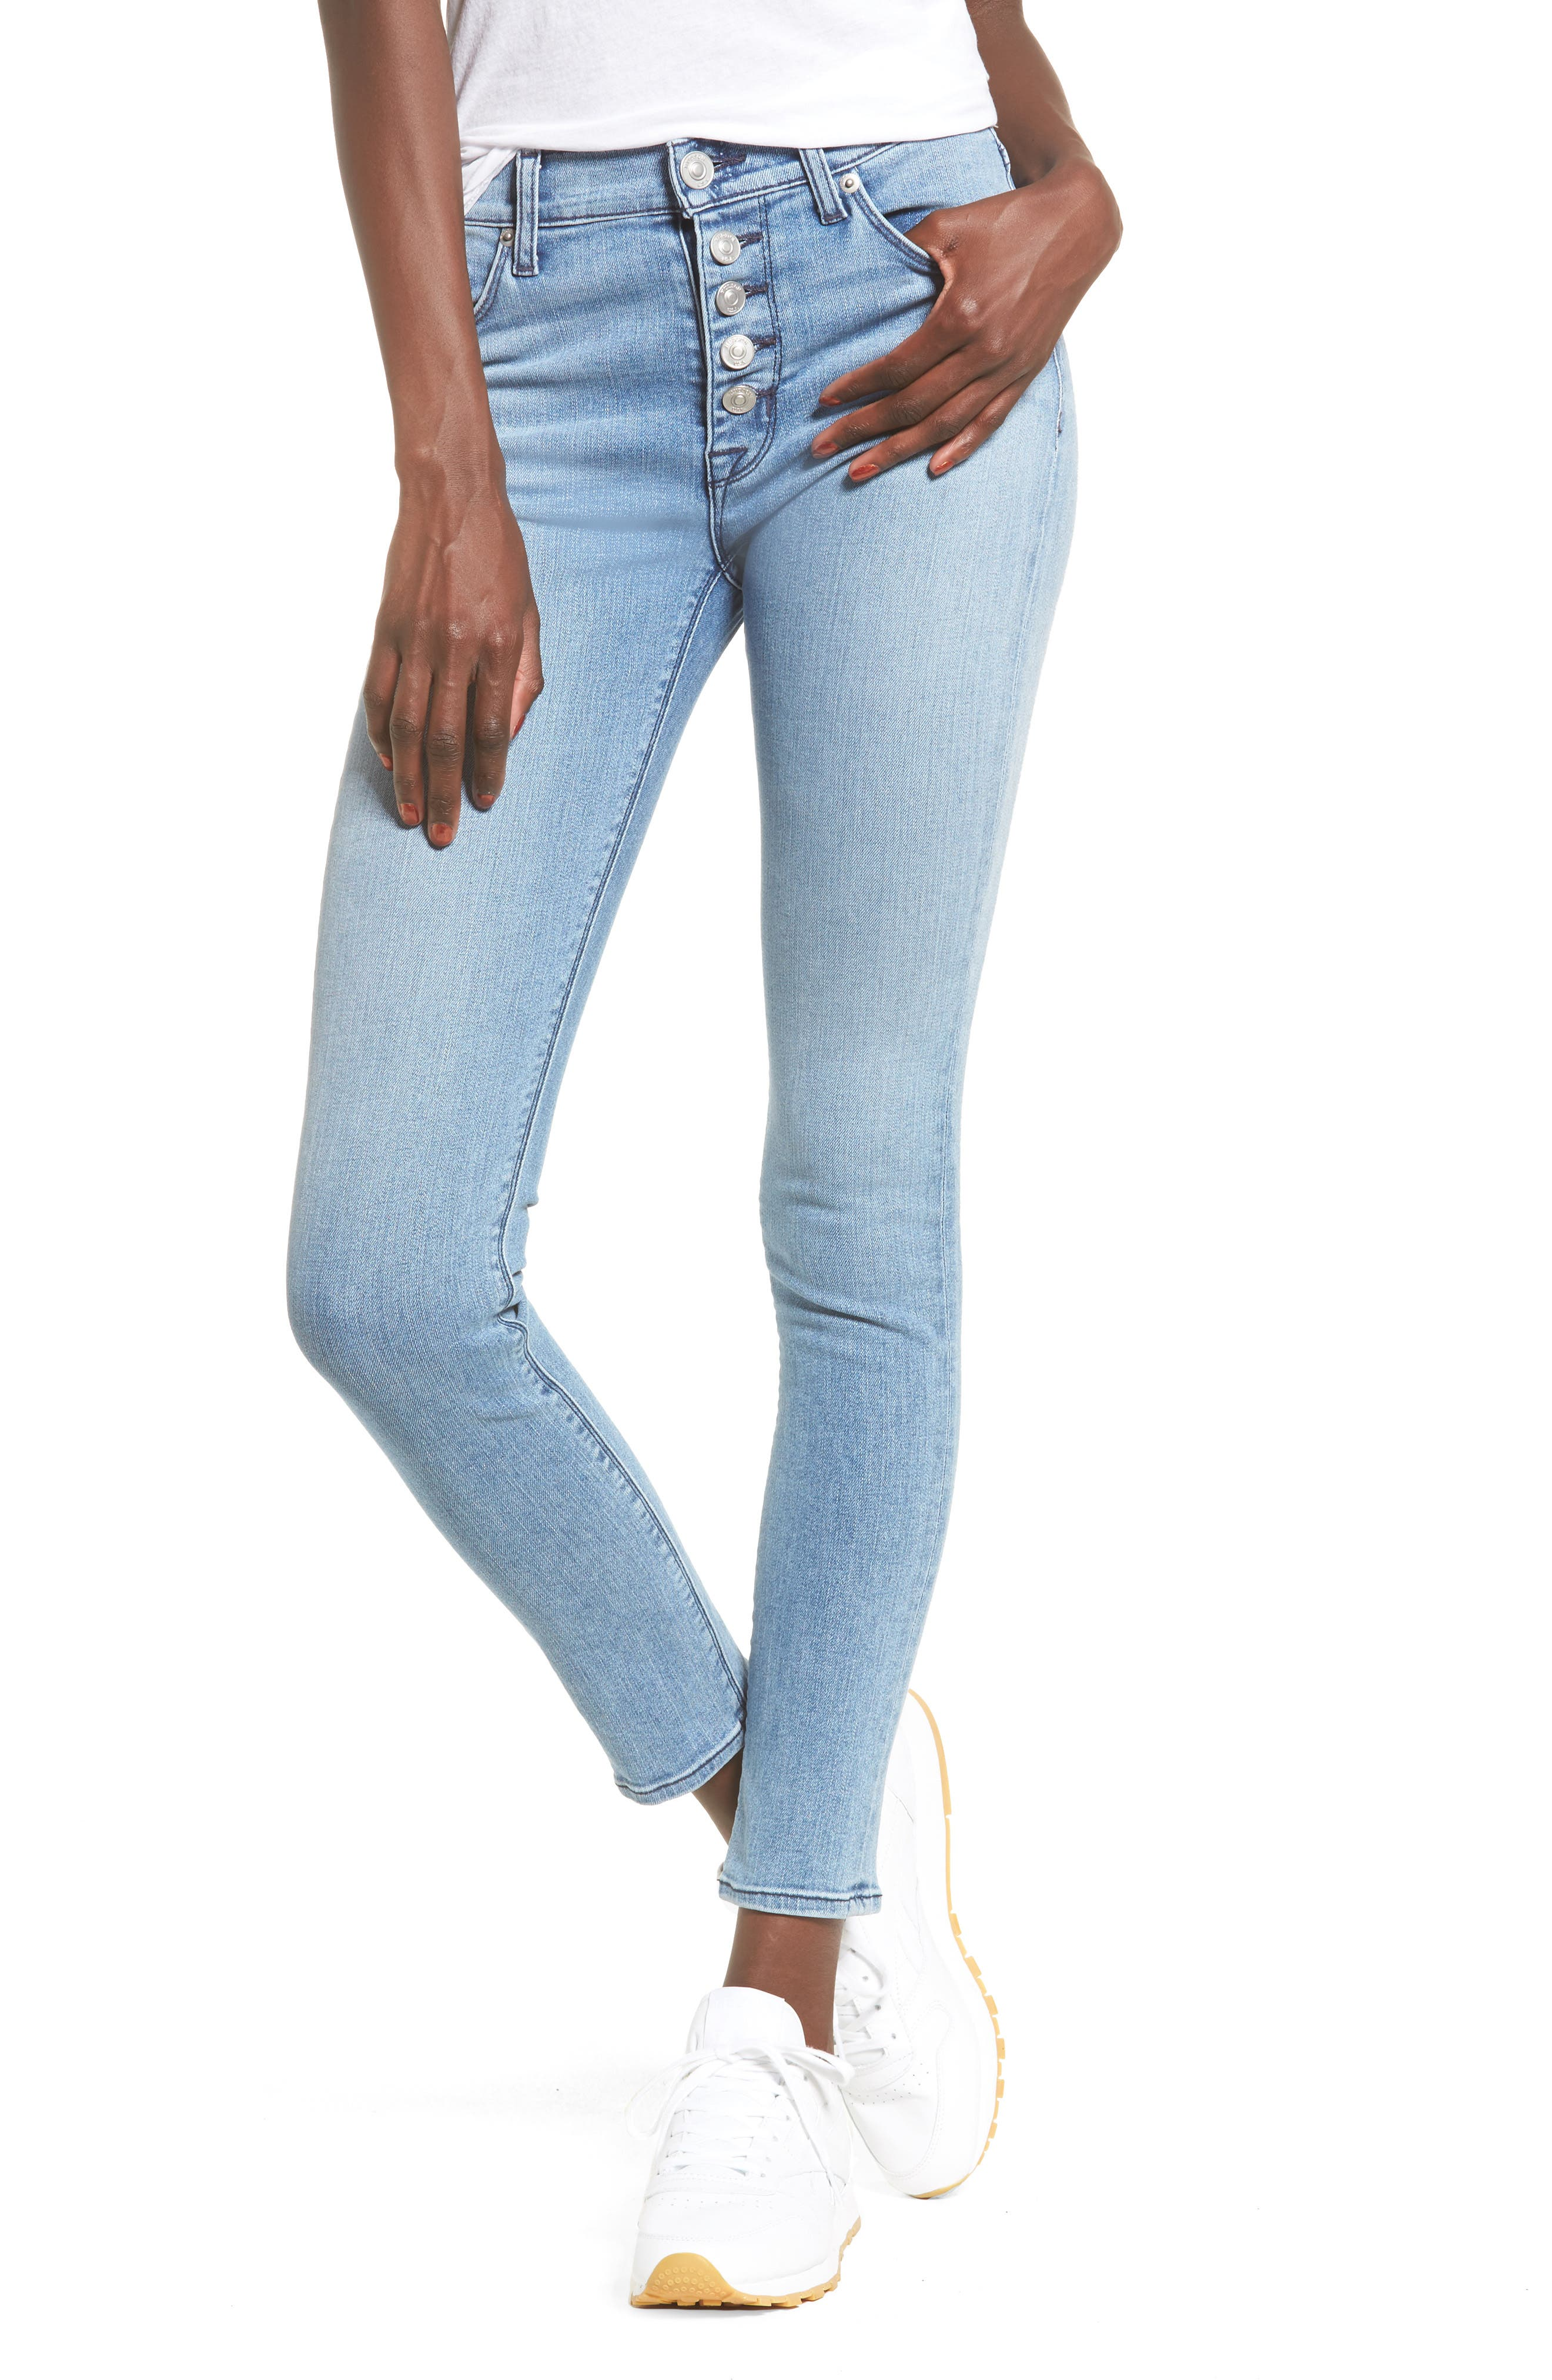 Alternate Image 1 Selected - Hudson Jeans Ciara High Waist Skinny Jeans (Shotgun)